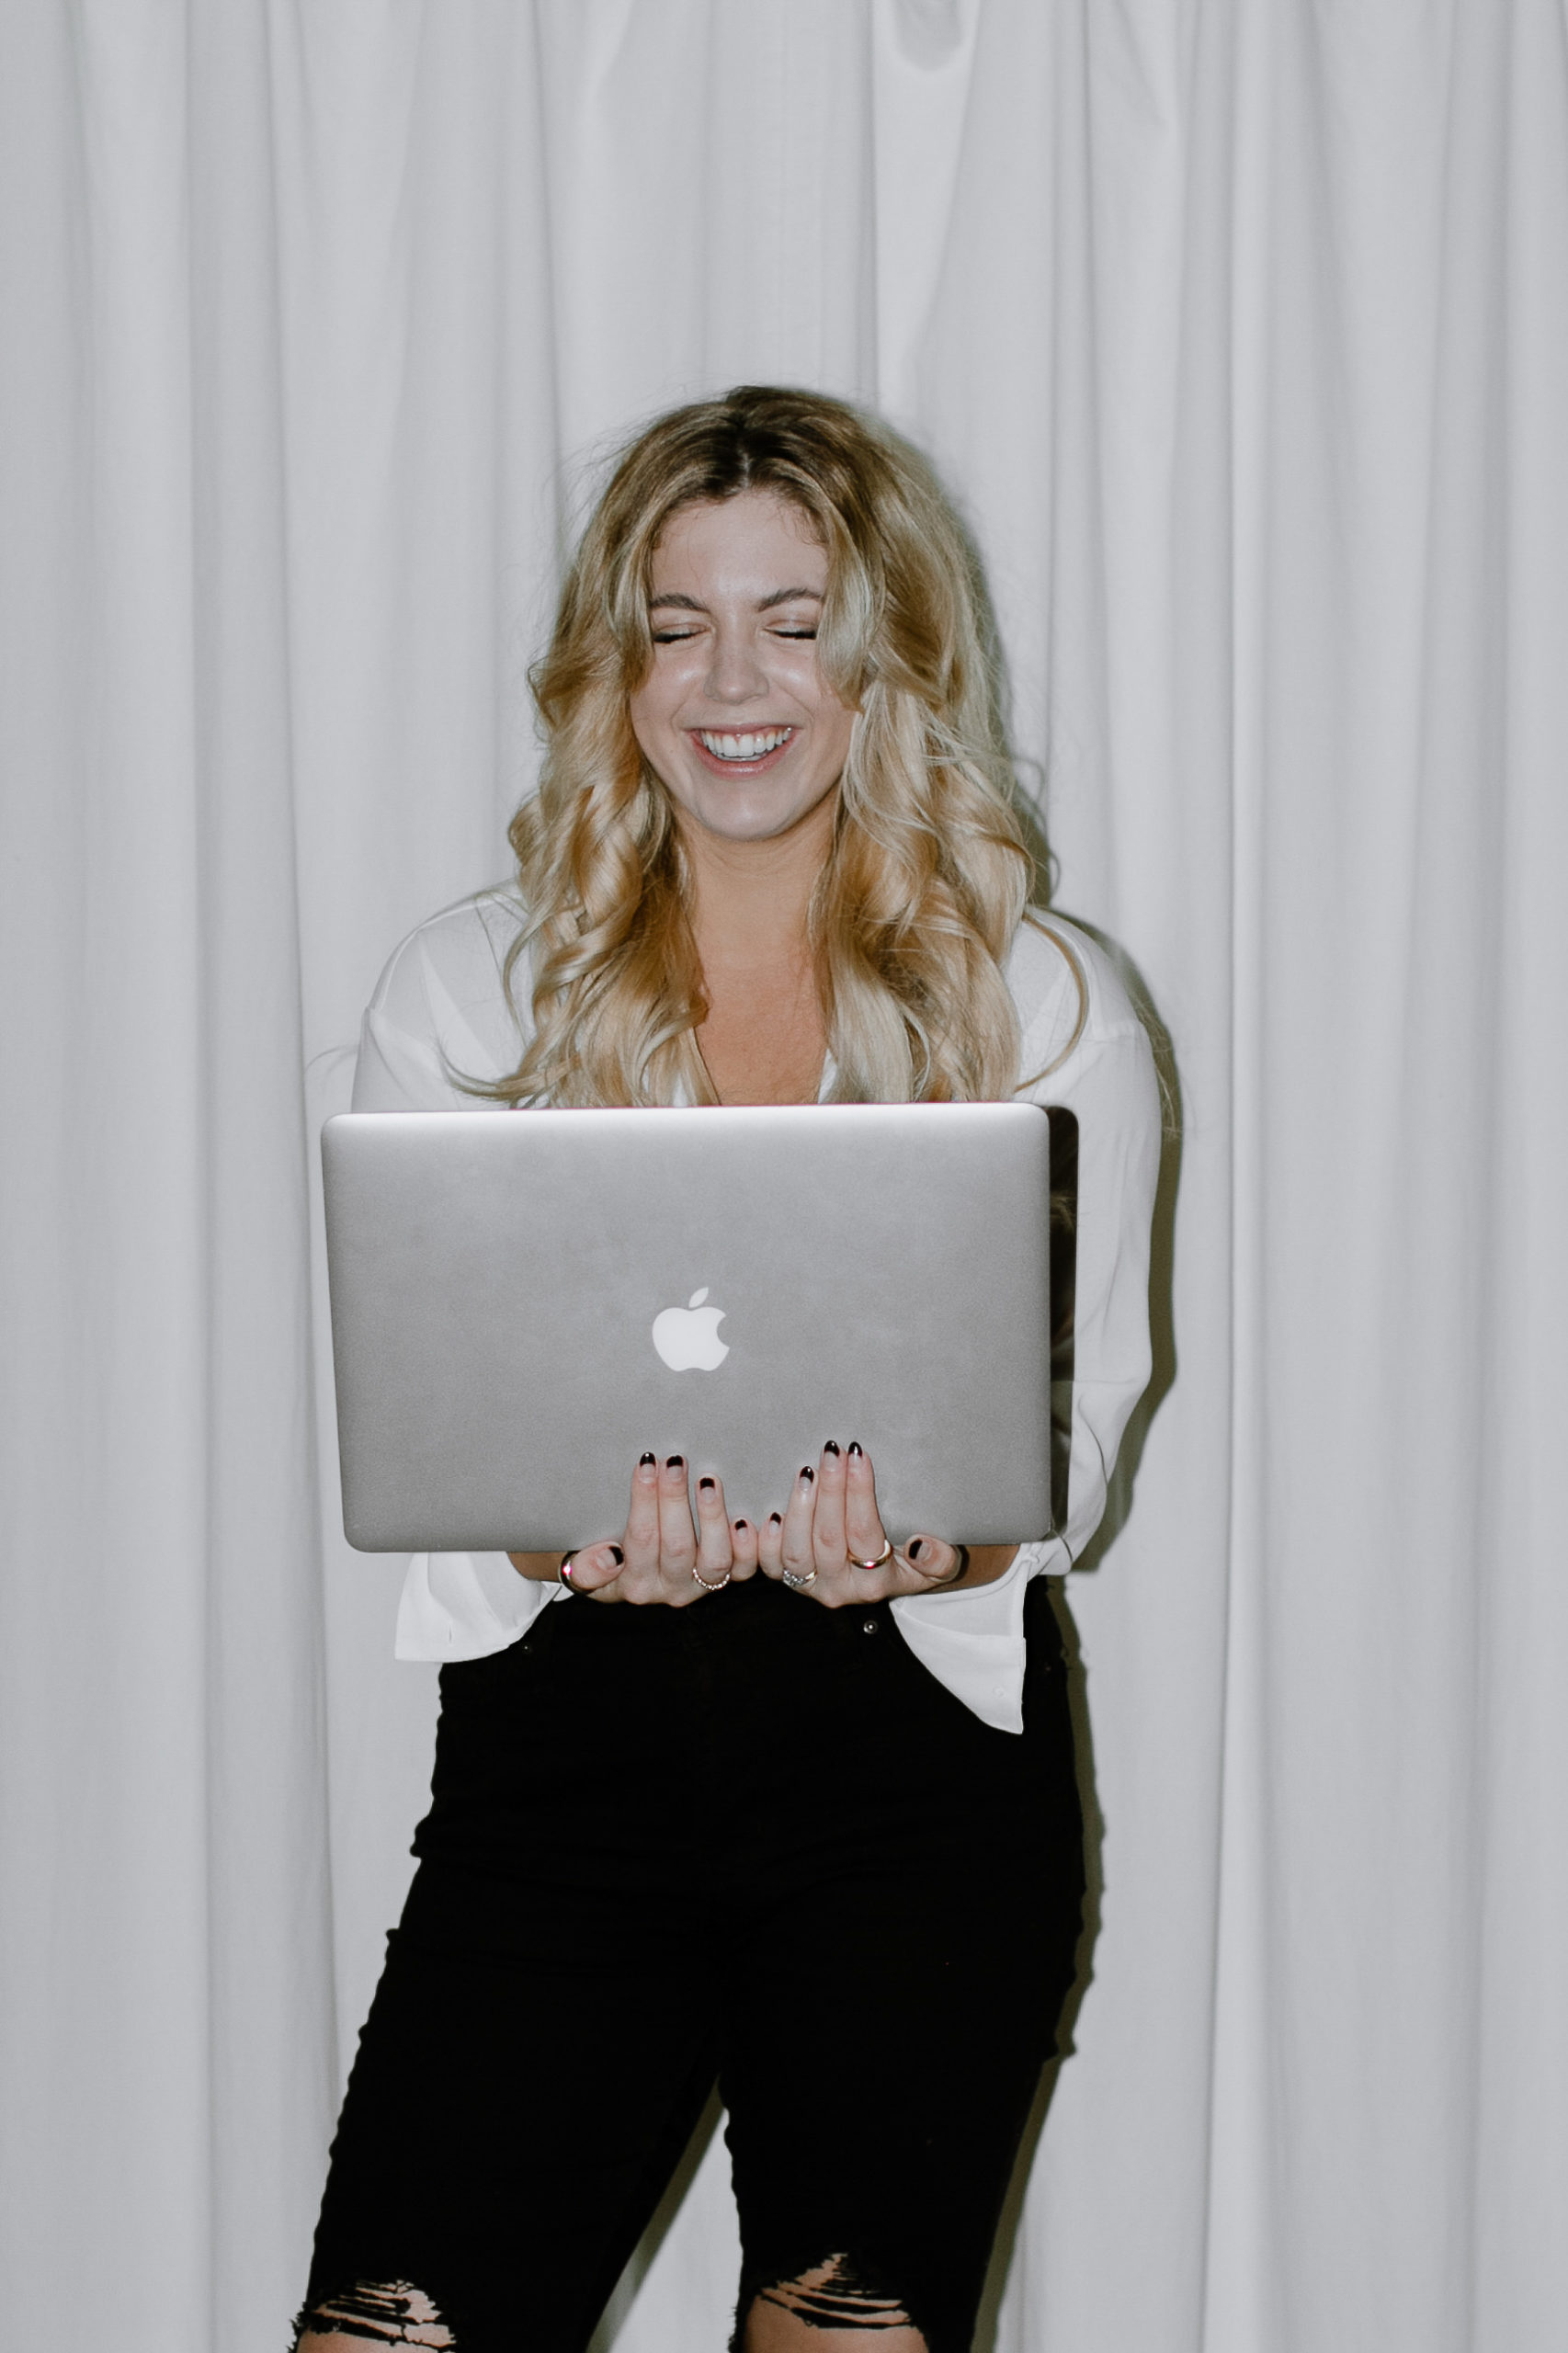 Photo of woman holding a laptop.